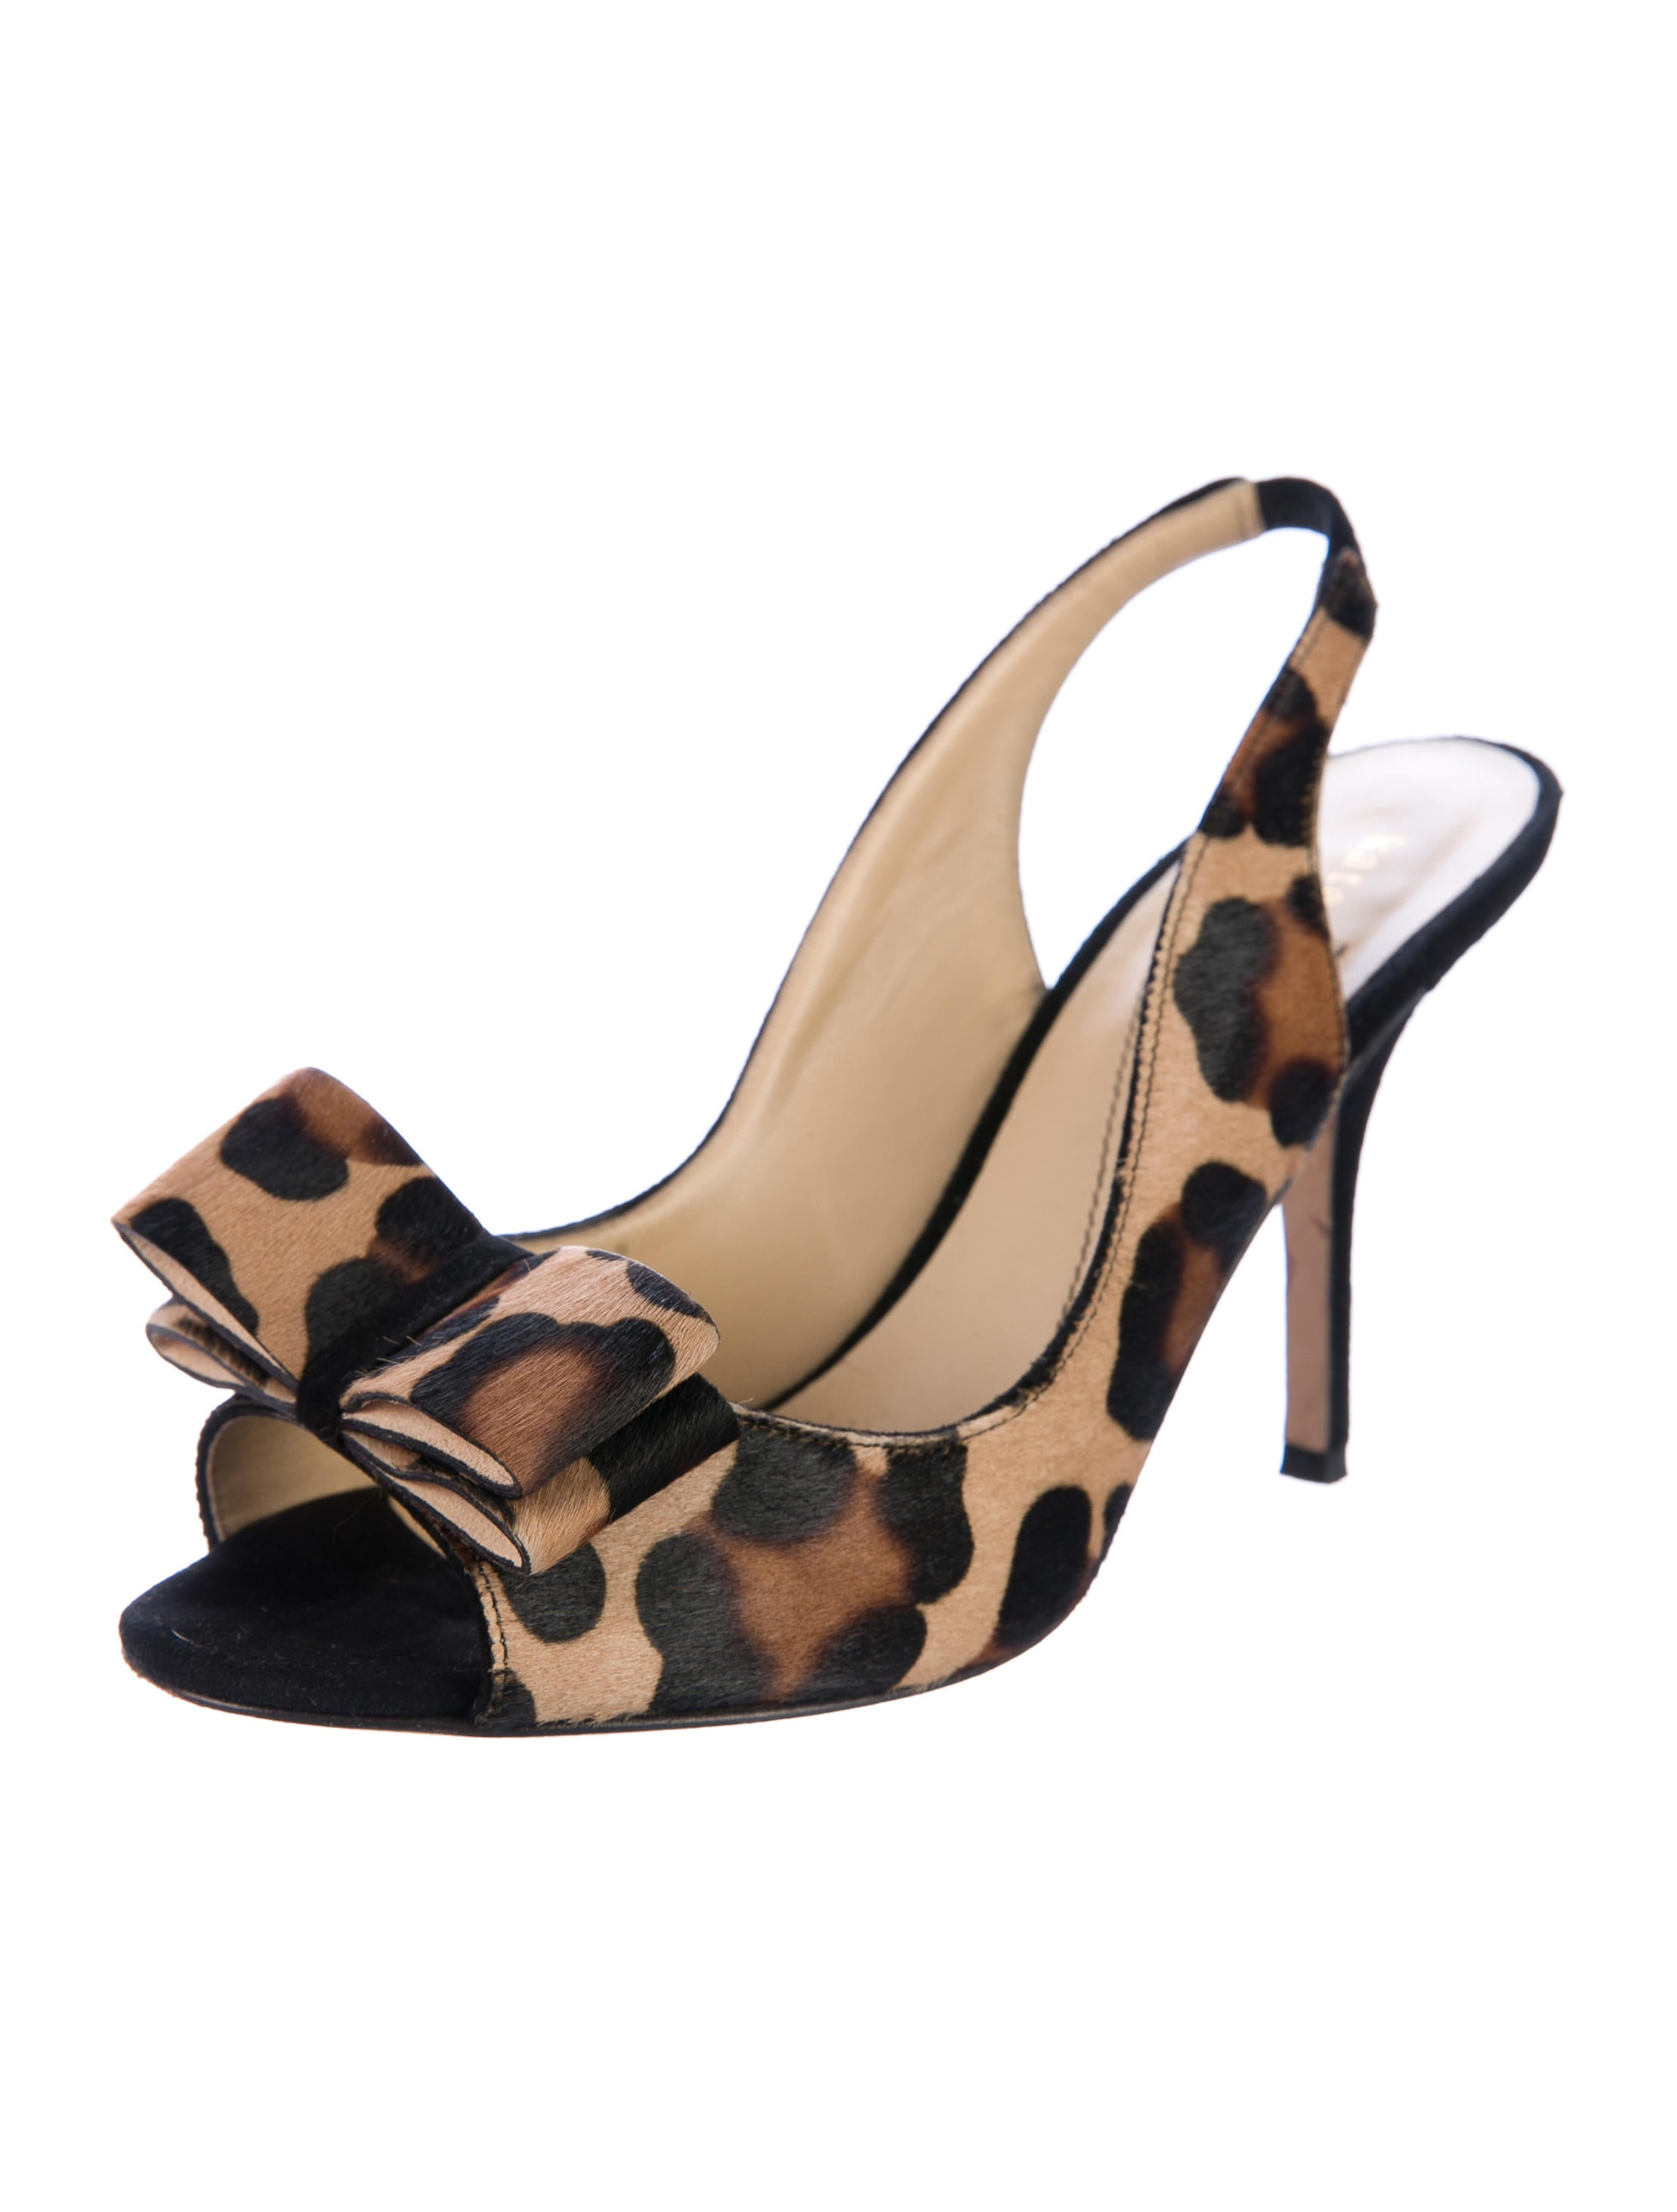 Kate Spade New York Chariot Ponyhair Slingback Pumps sale explore clearance real sale real shop for cheap online 2014 new cheap online 04YRDa